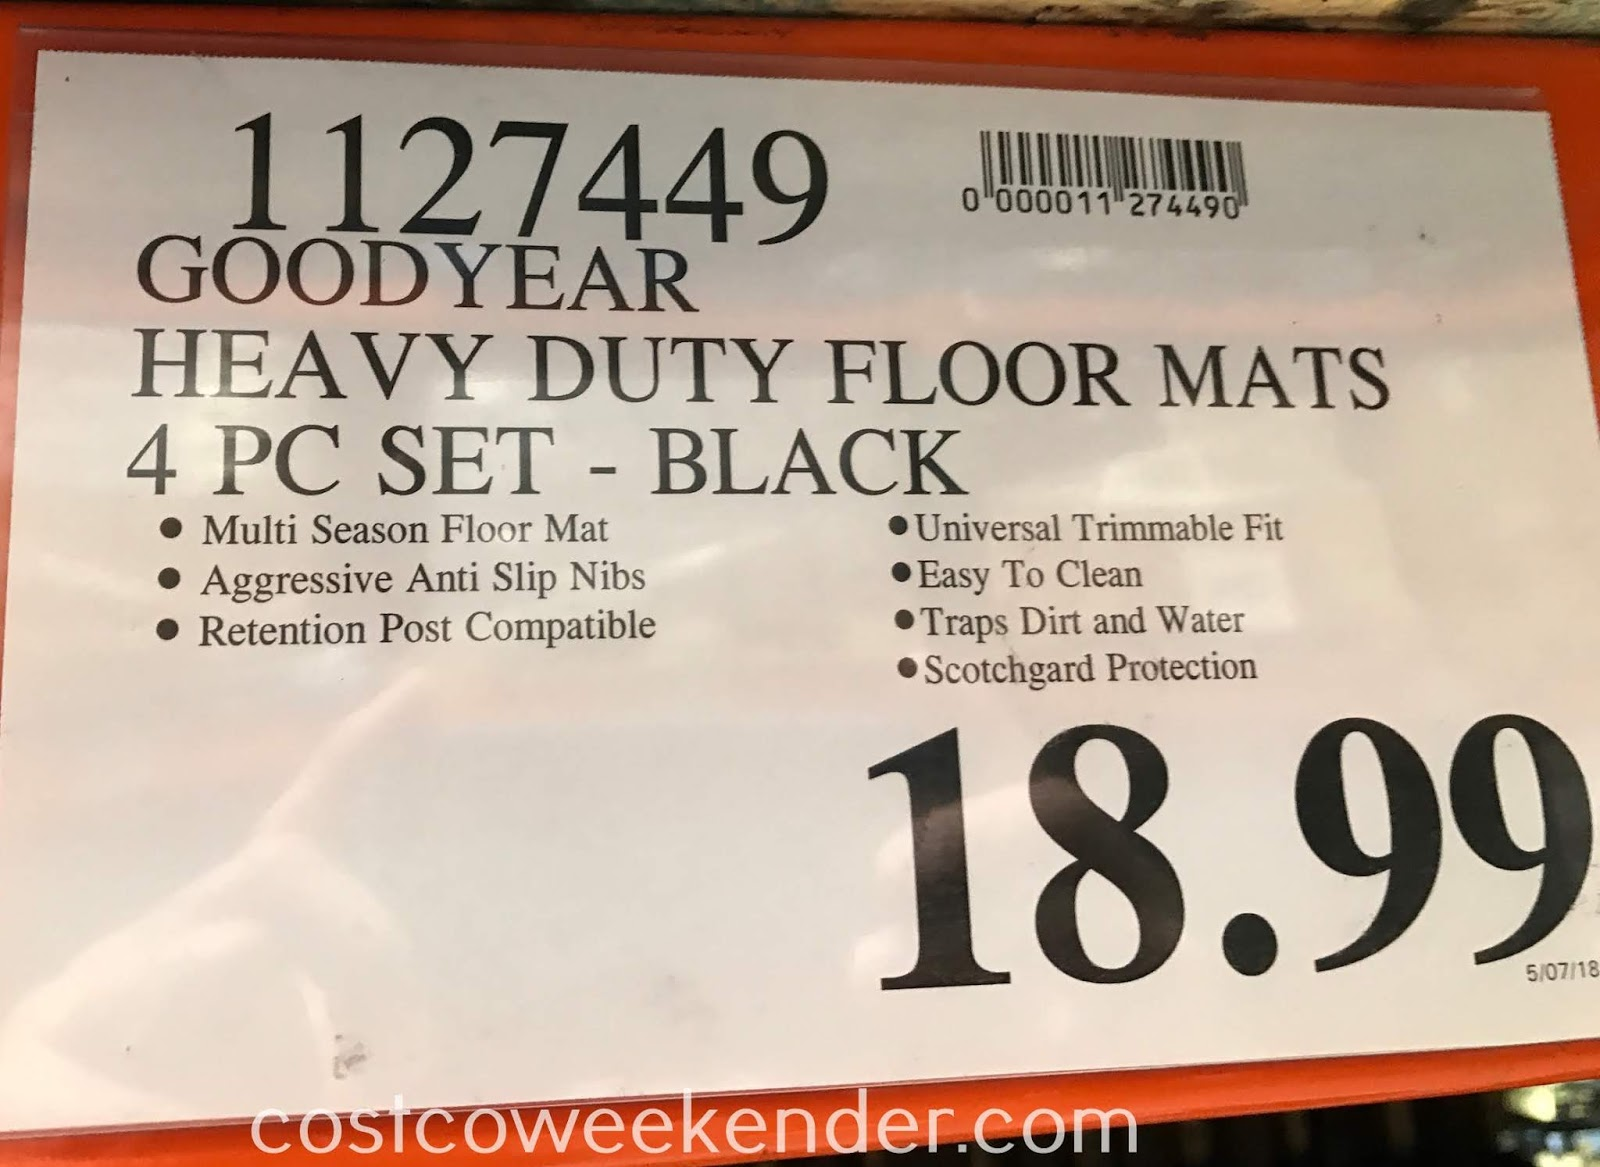 Deal for a set of 4 Goodyear All-weather Floor Mats at Costco